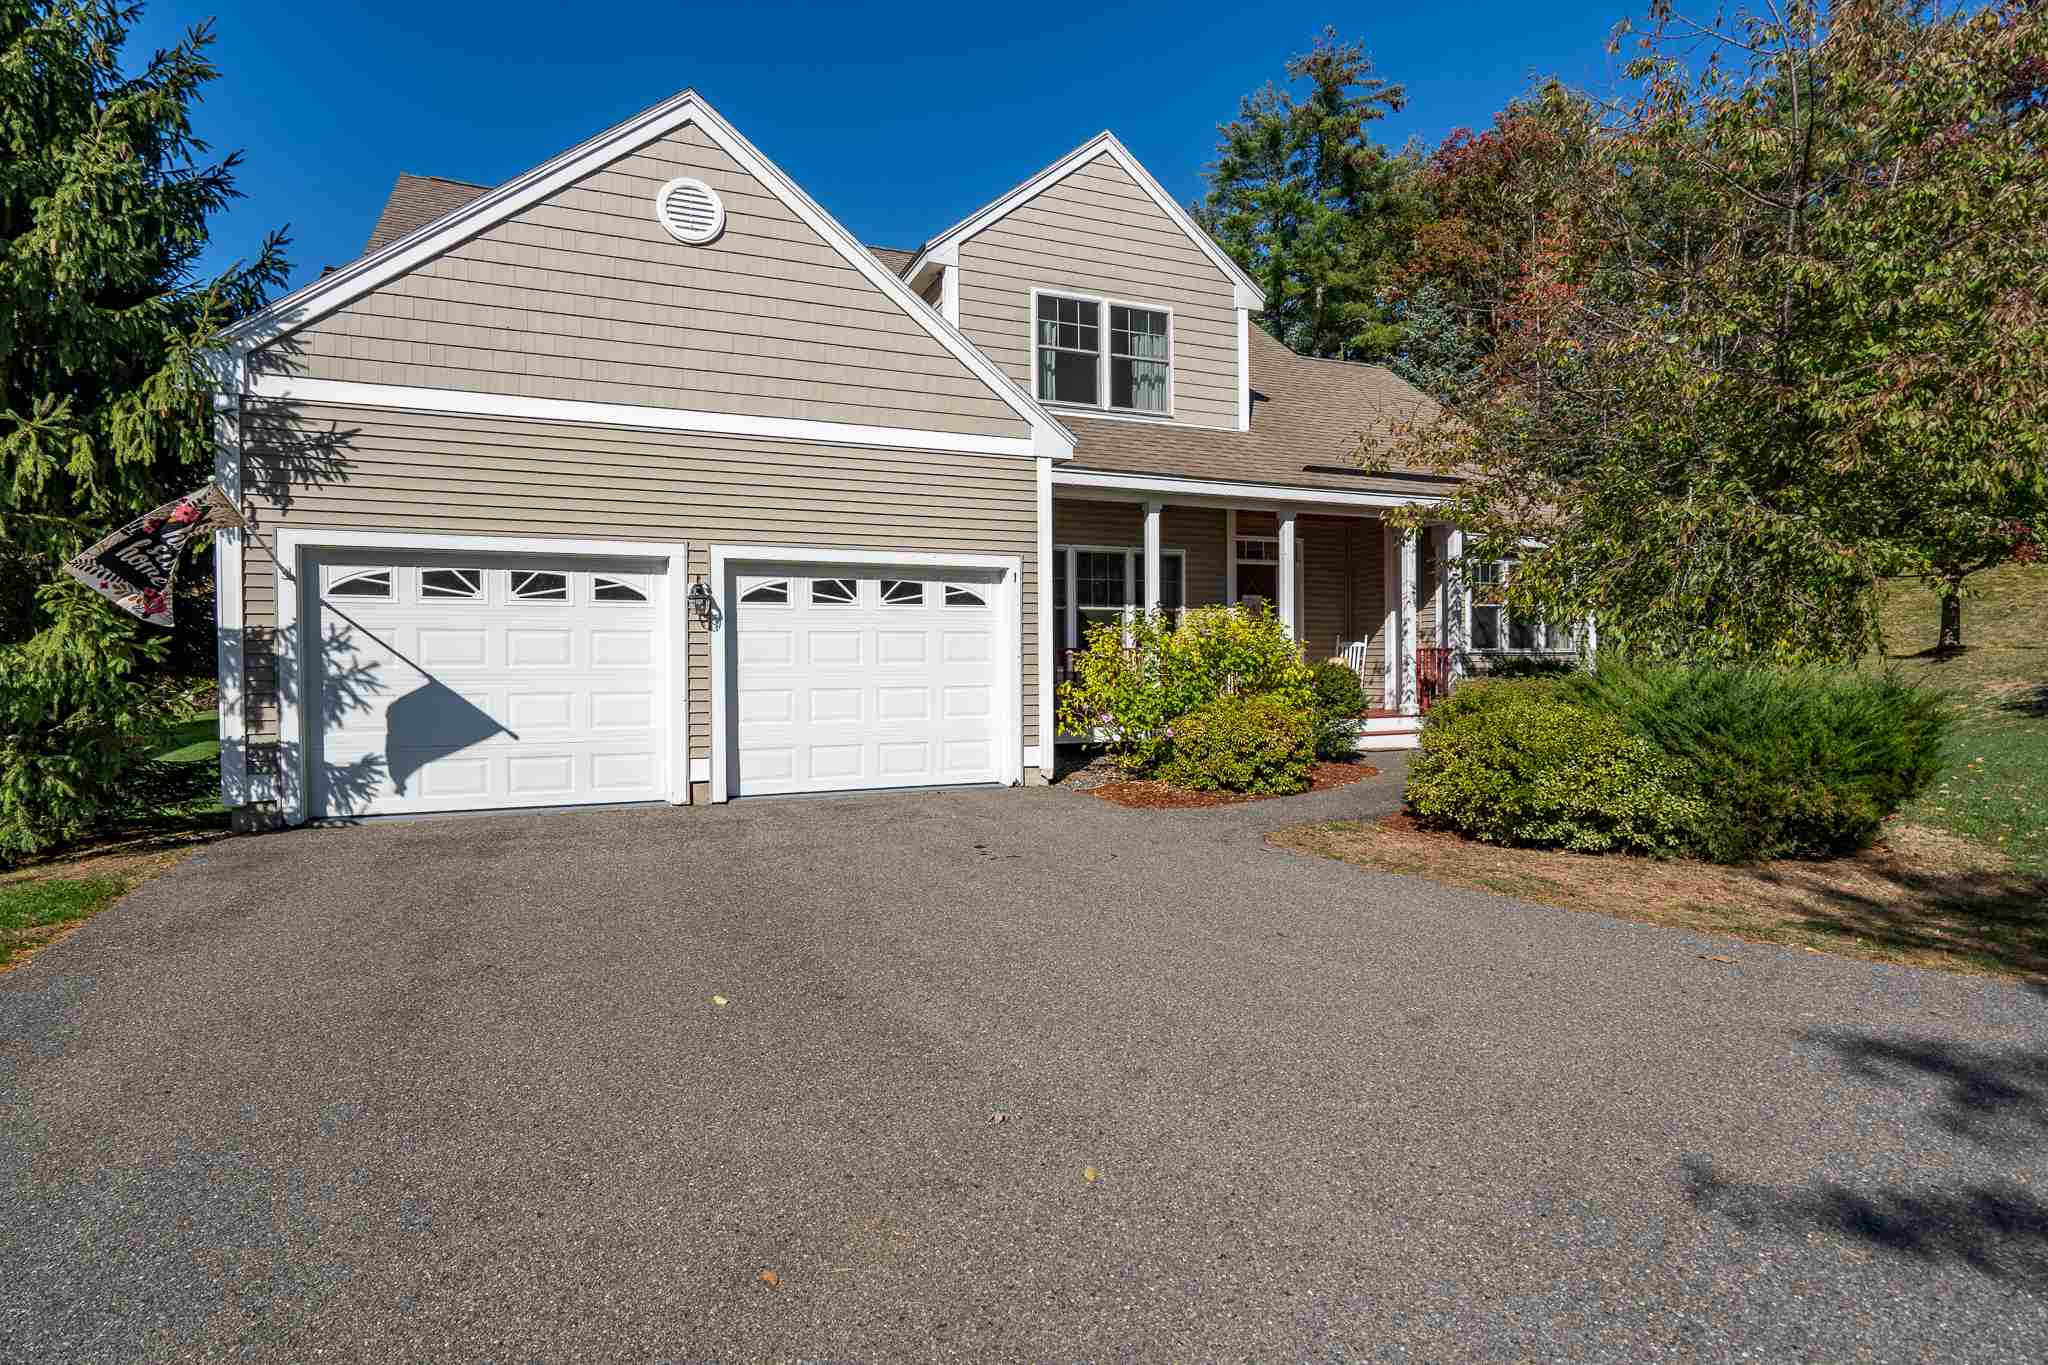 MLS 4834710: 1 Glen Court, Amherst NH